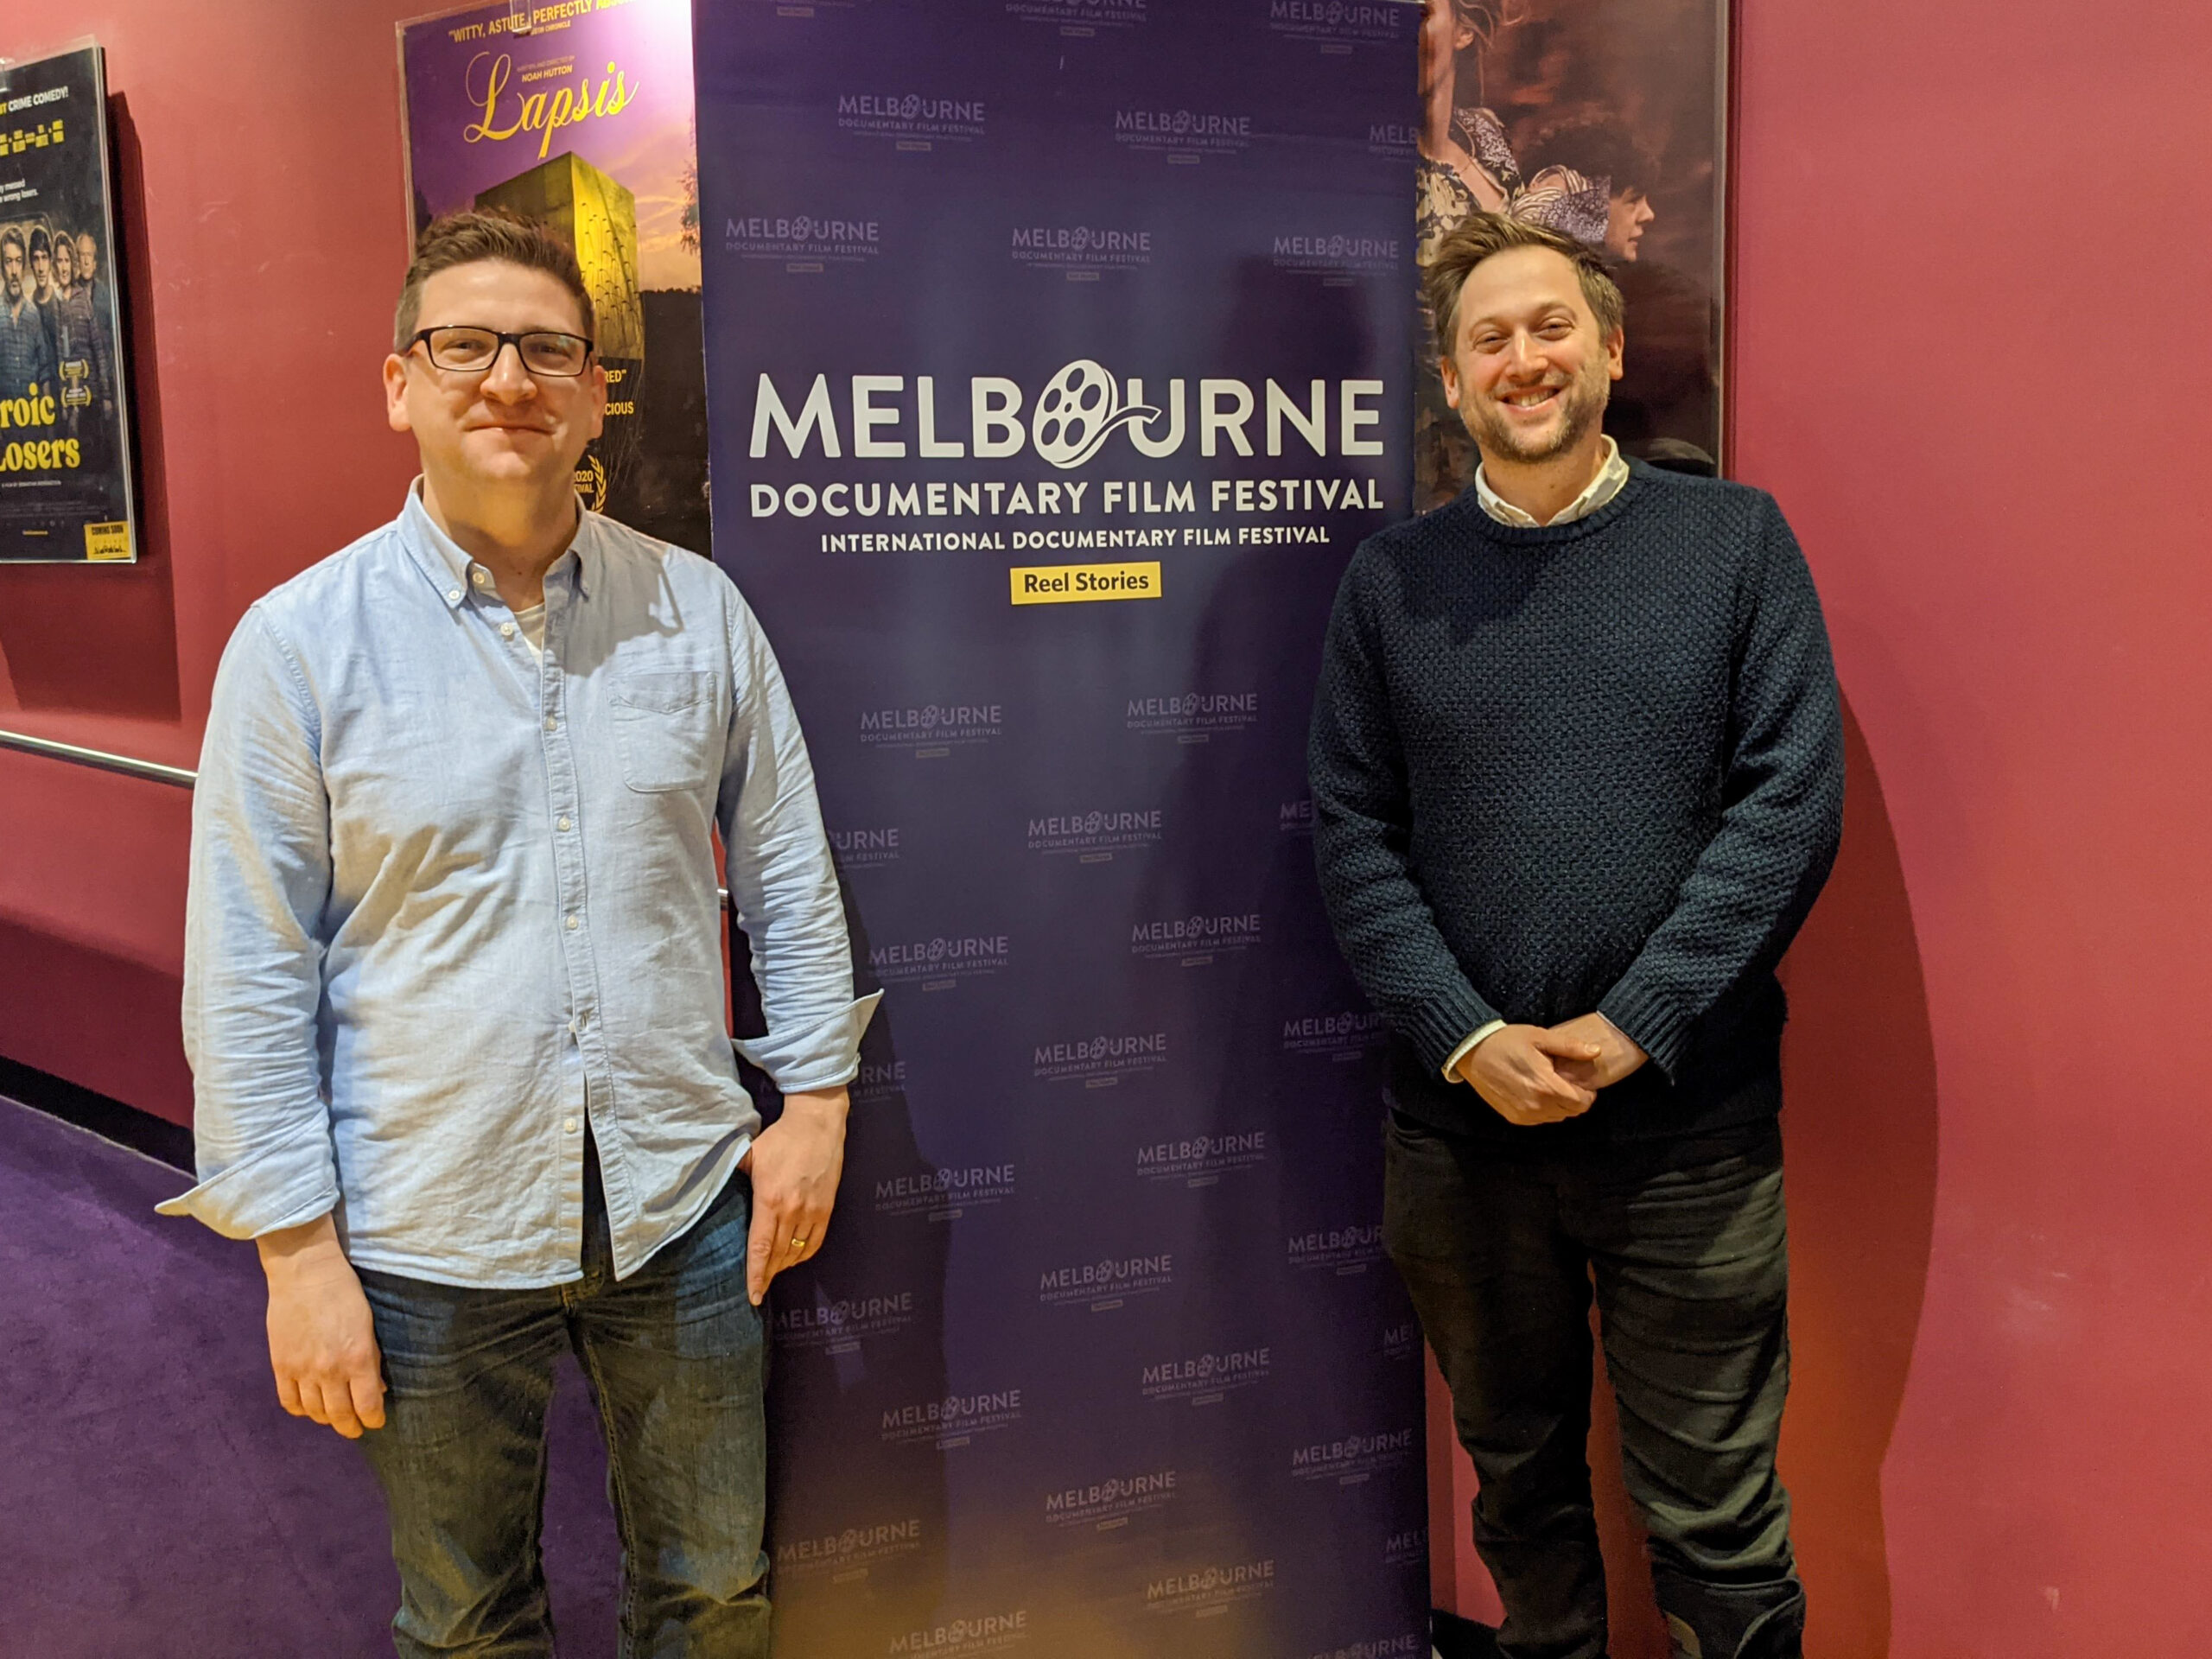 Directors Liam burke and Mark Hellinger at the Melbourne Documentary Film festival screening Superheroes and Me